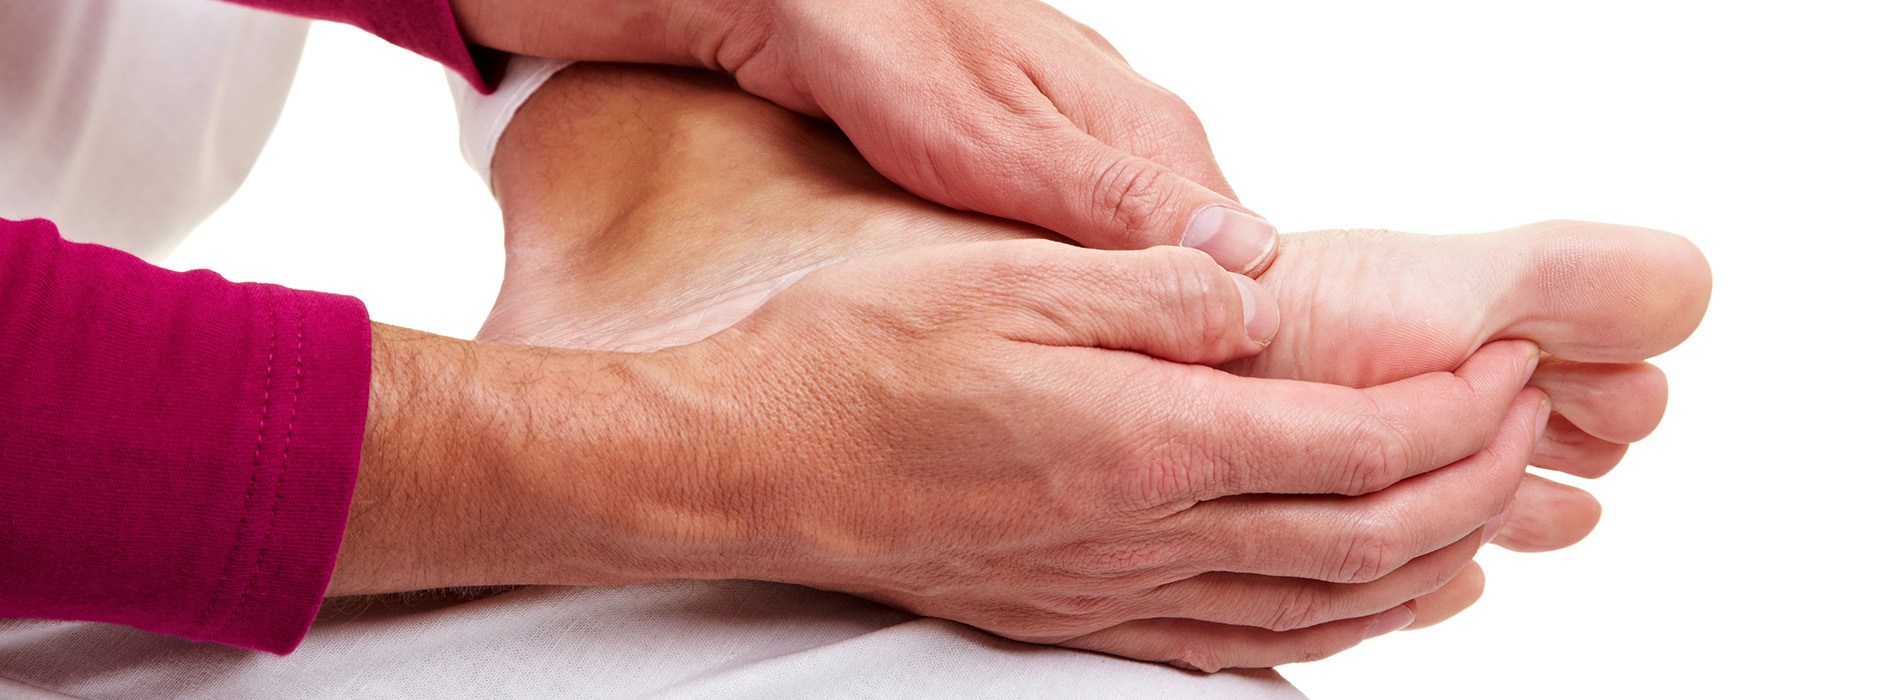 Foot Specialists of Kansas City – Podiatrists in the KC Metro